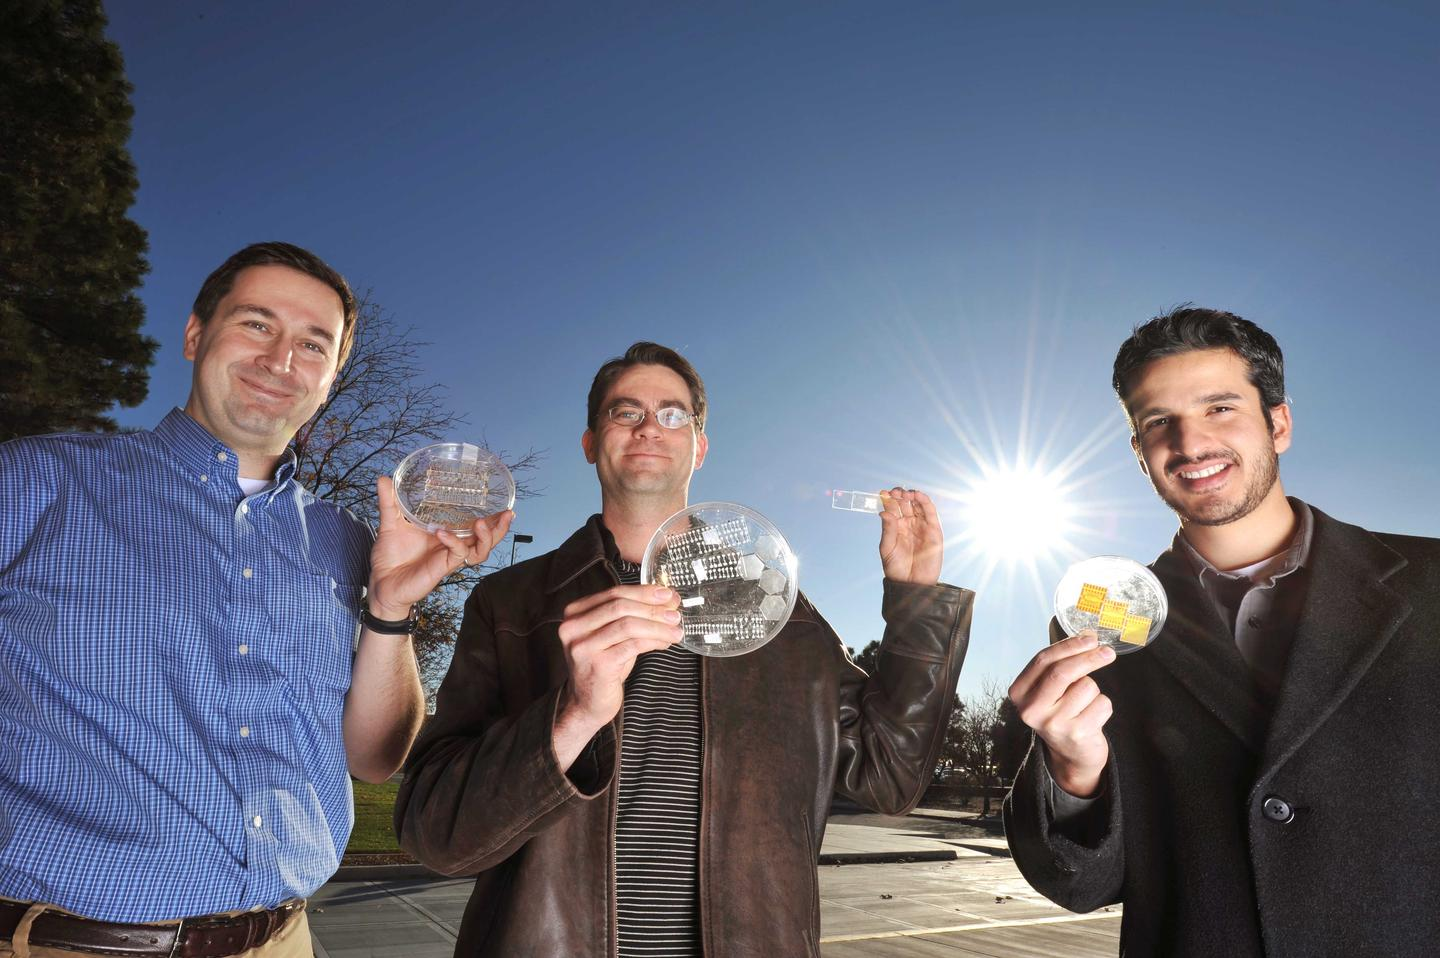 Sandia researcher team hold samples containing arrays of microsolar cells (Image: Randy Montoya)